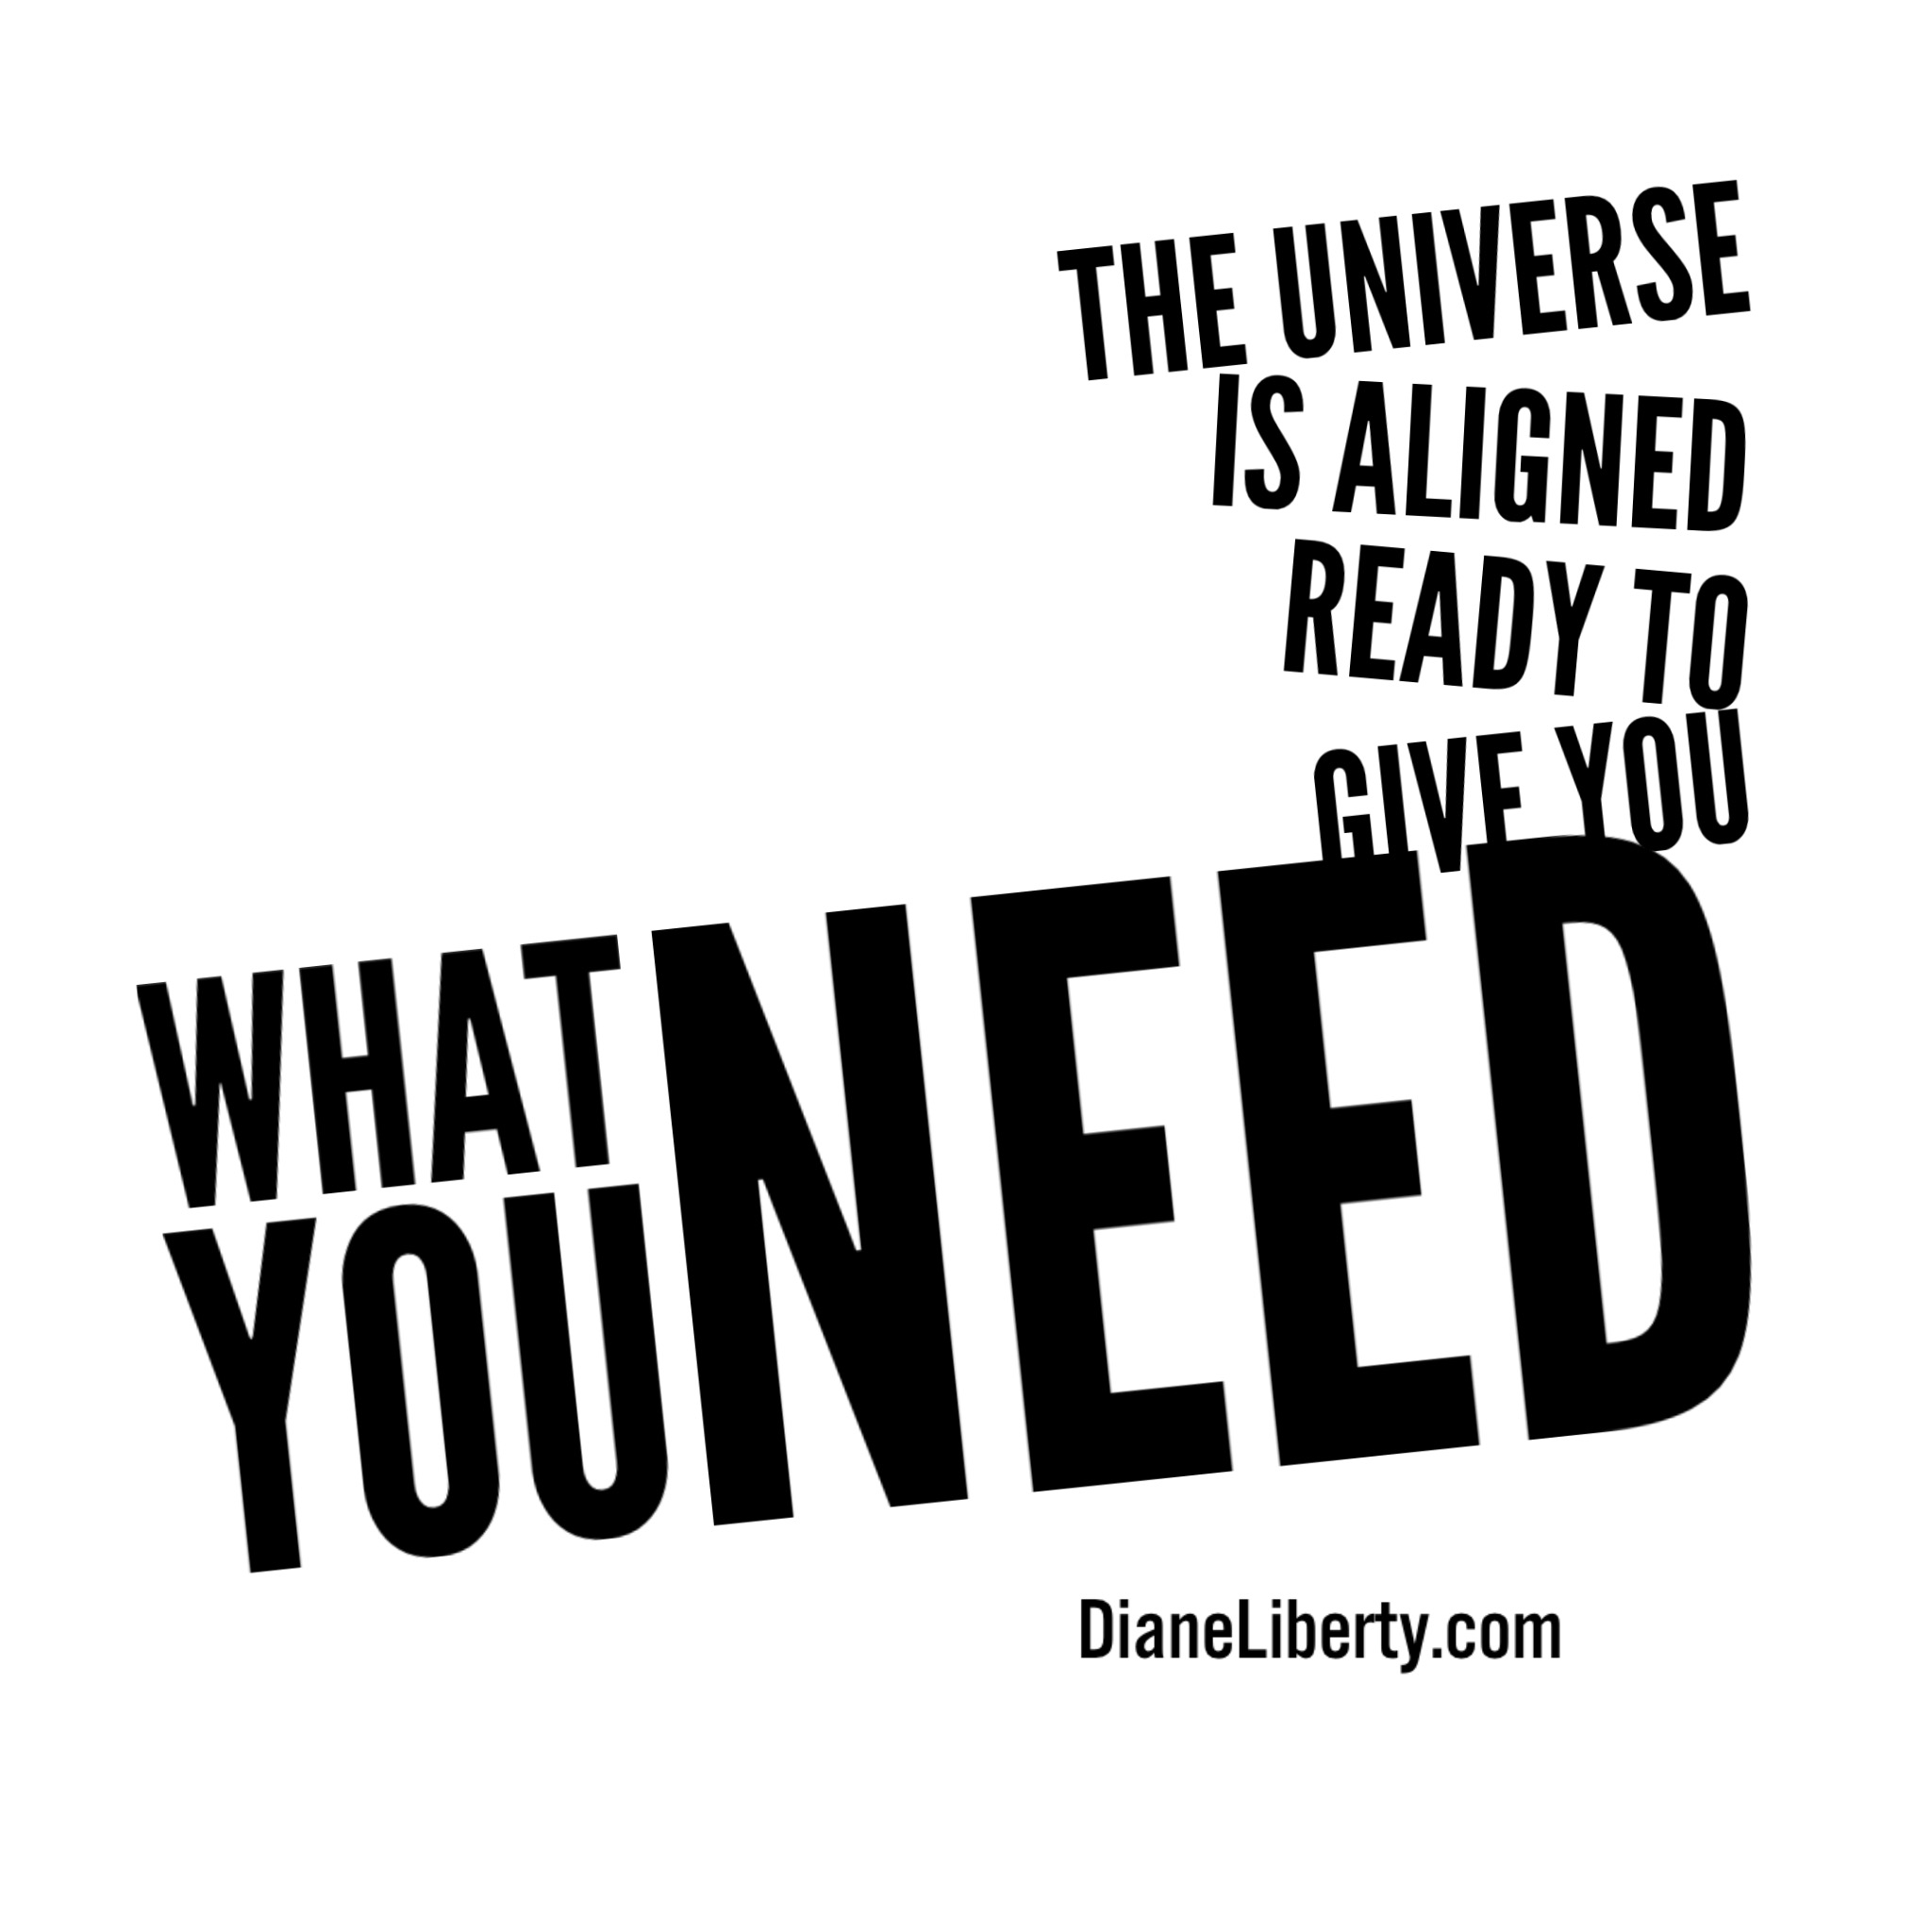 The Universe Is Aligned - Ready to give you what you need